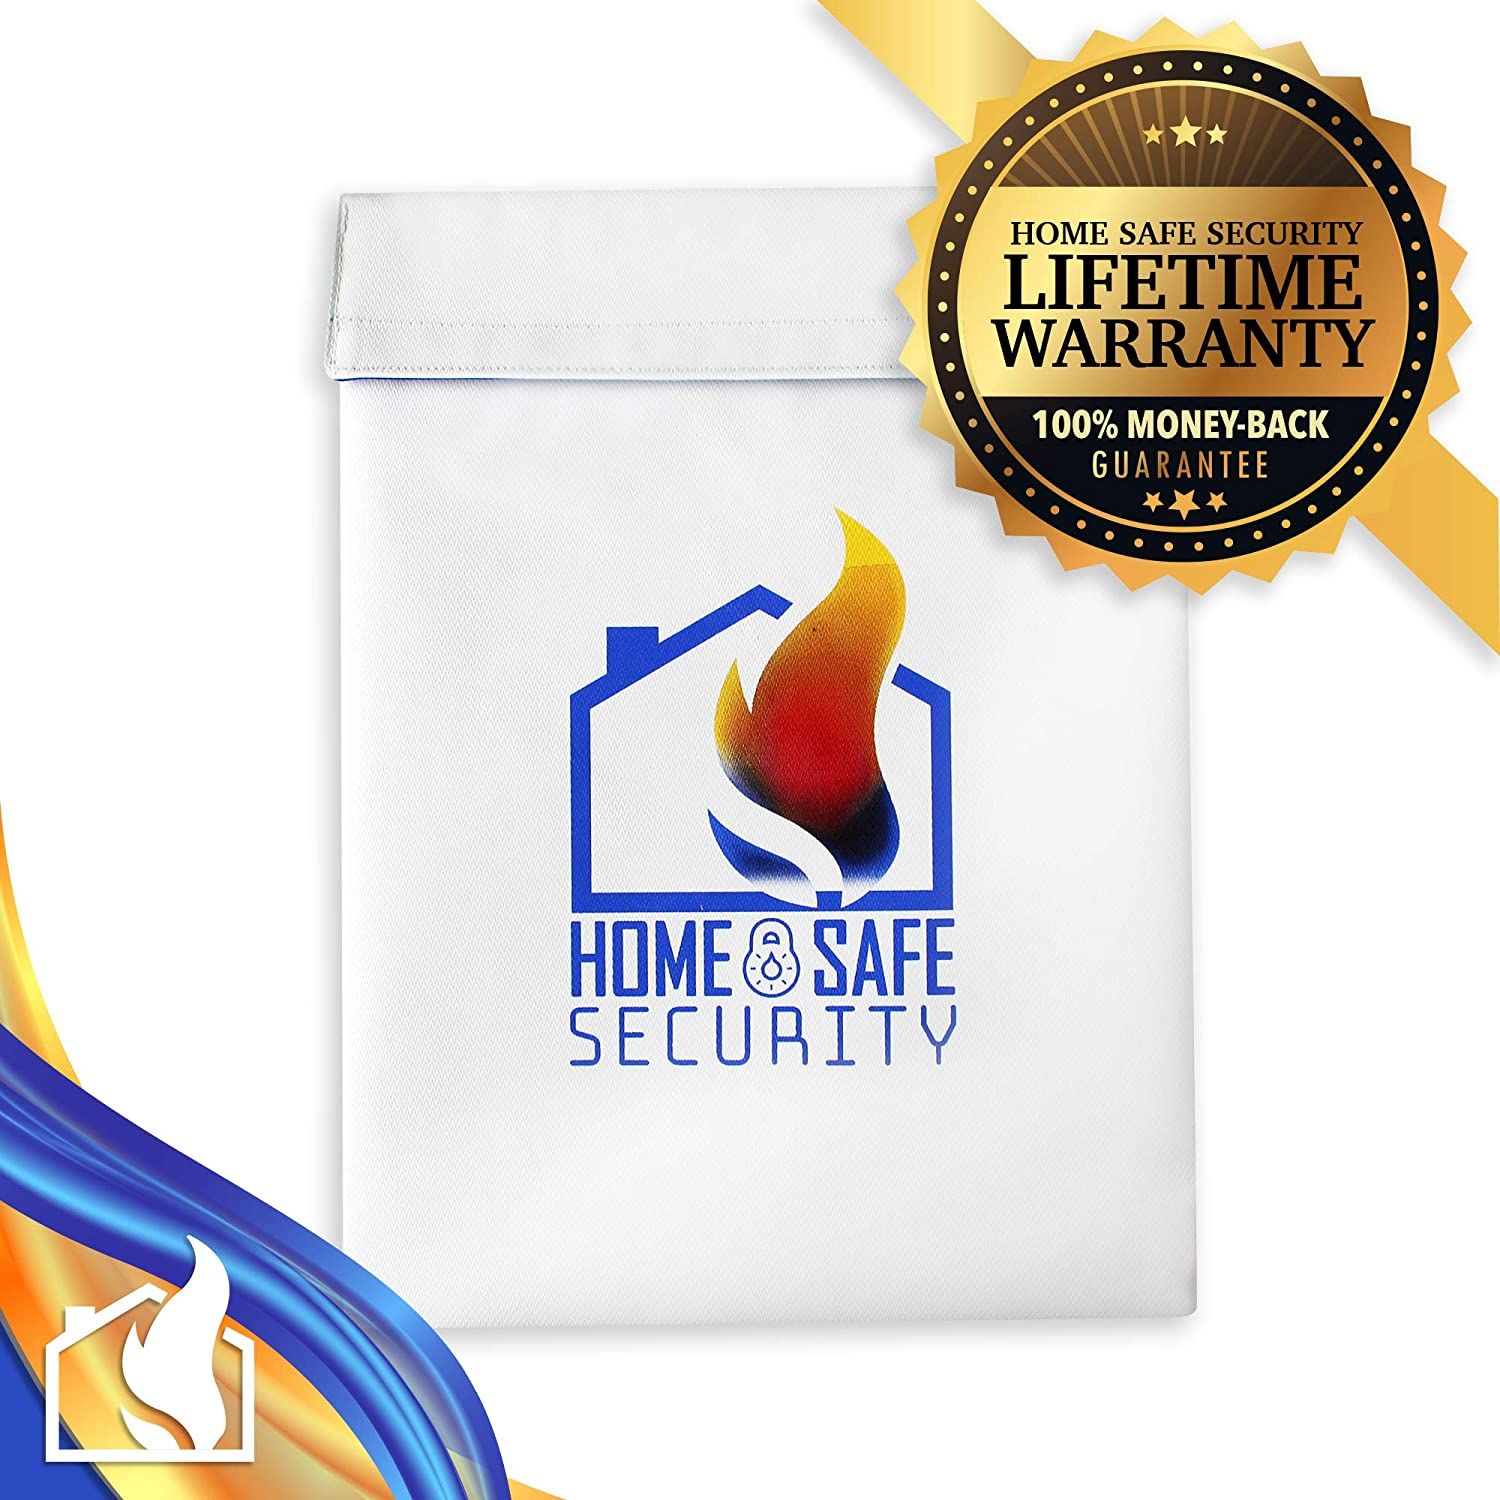 Large Fire Resistant Envelope Pouch for Important Documents 15x11 Home Safe Security Fireproof Bag